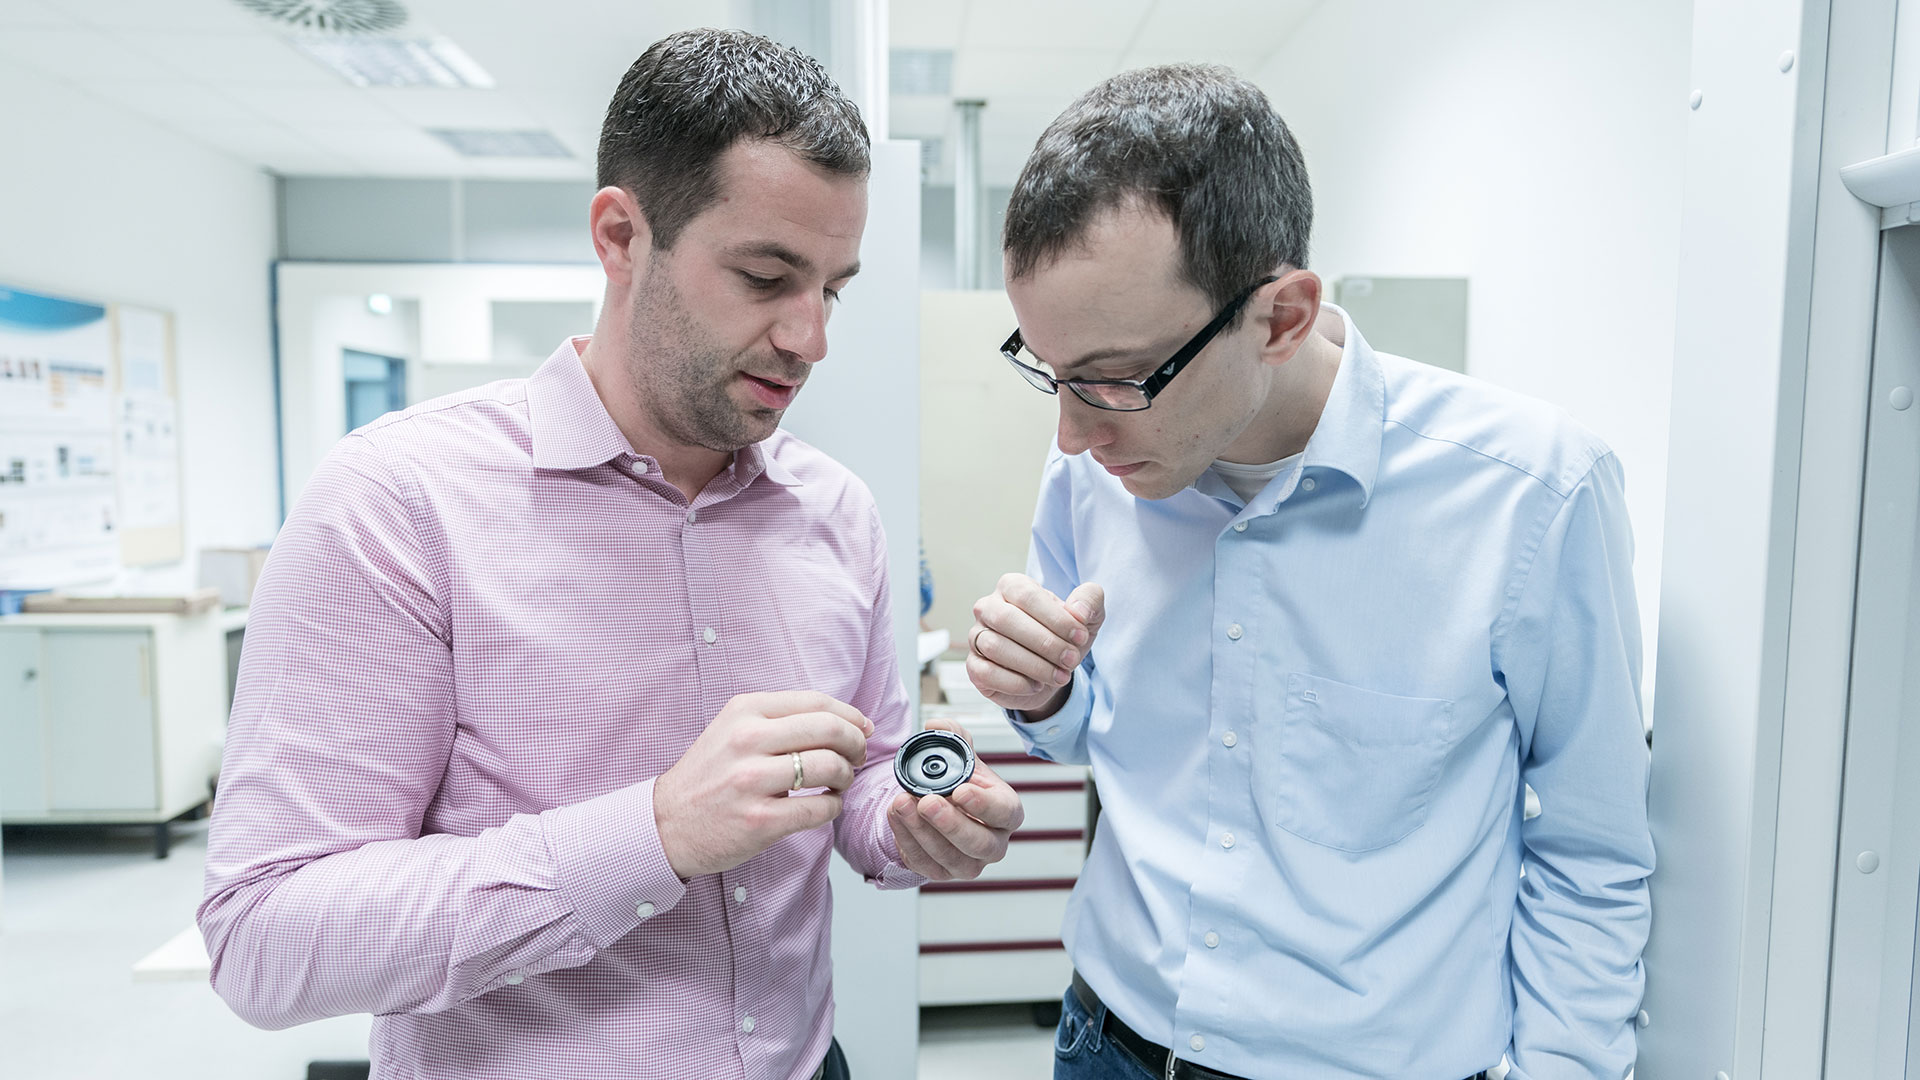 Dr. Fabian Kaiser explains his new job in the tribology laboratory to Dr. Neuberger.